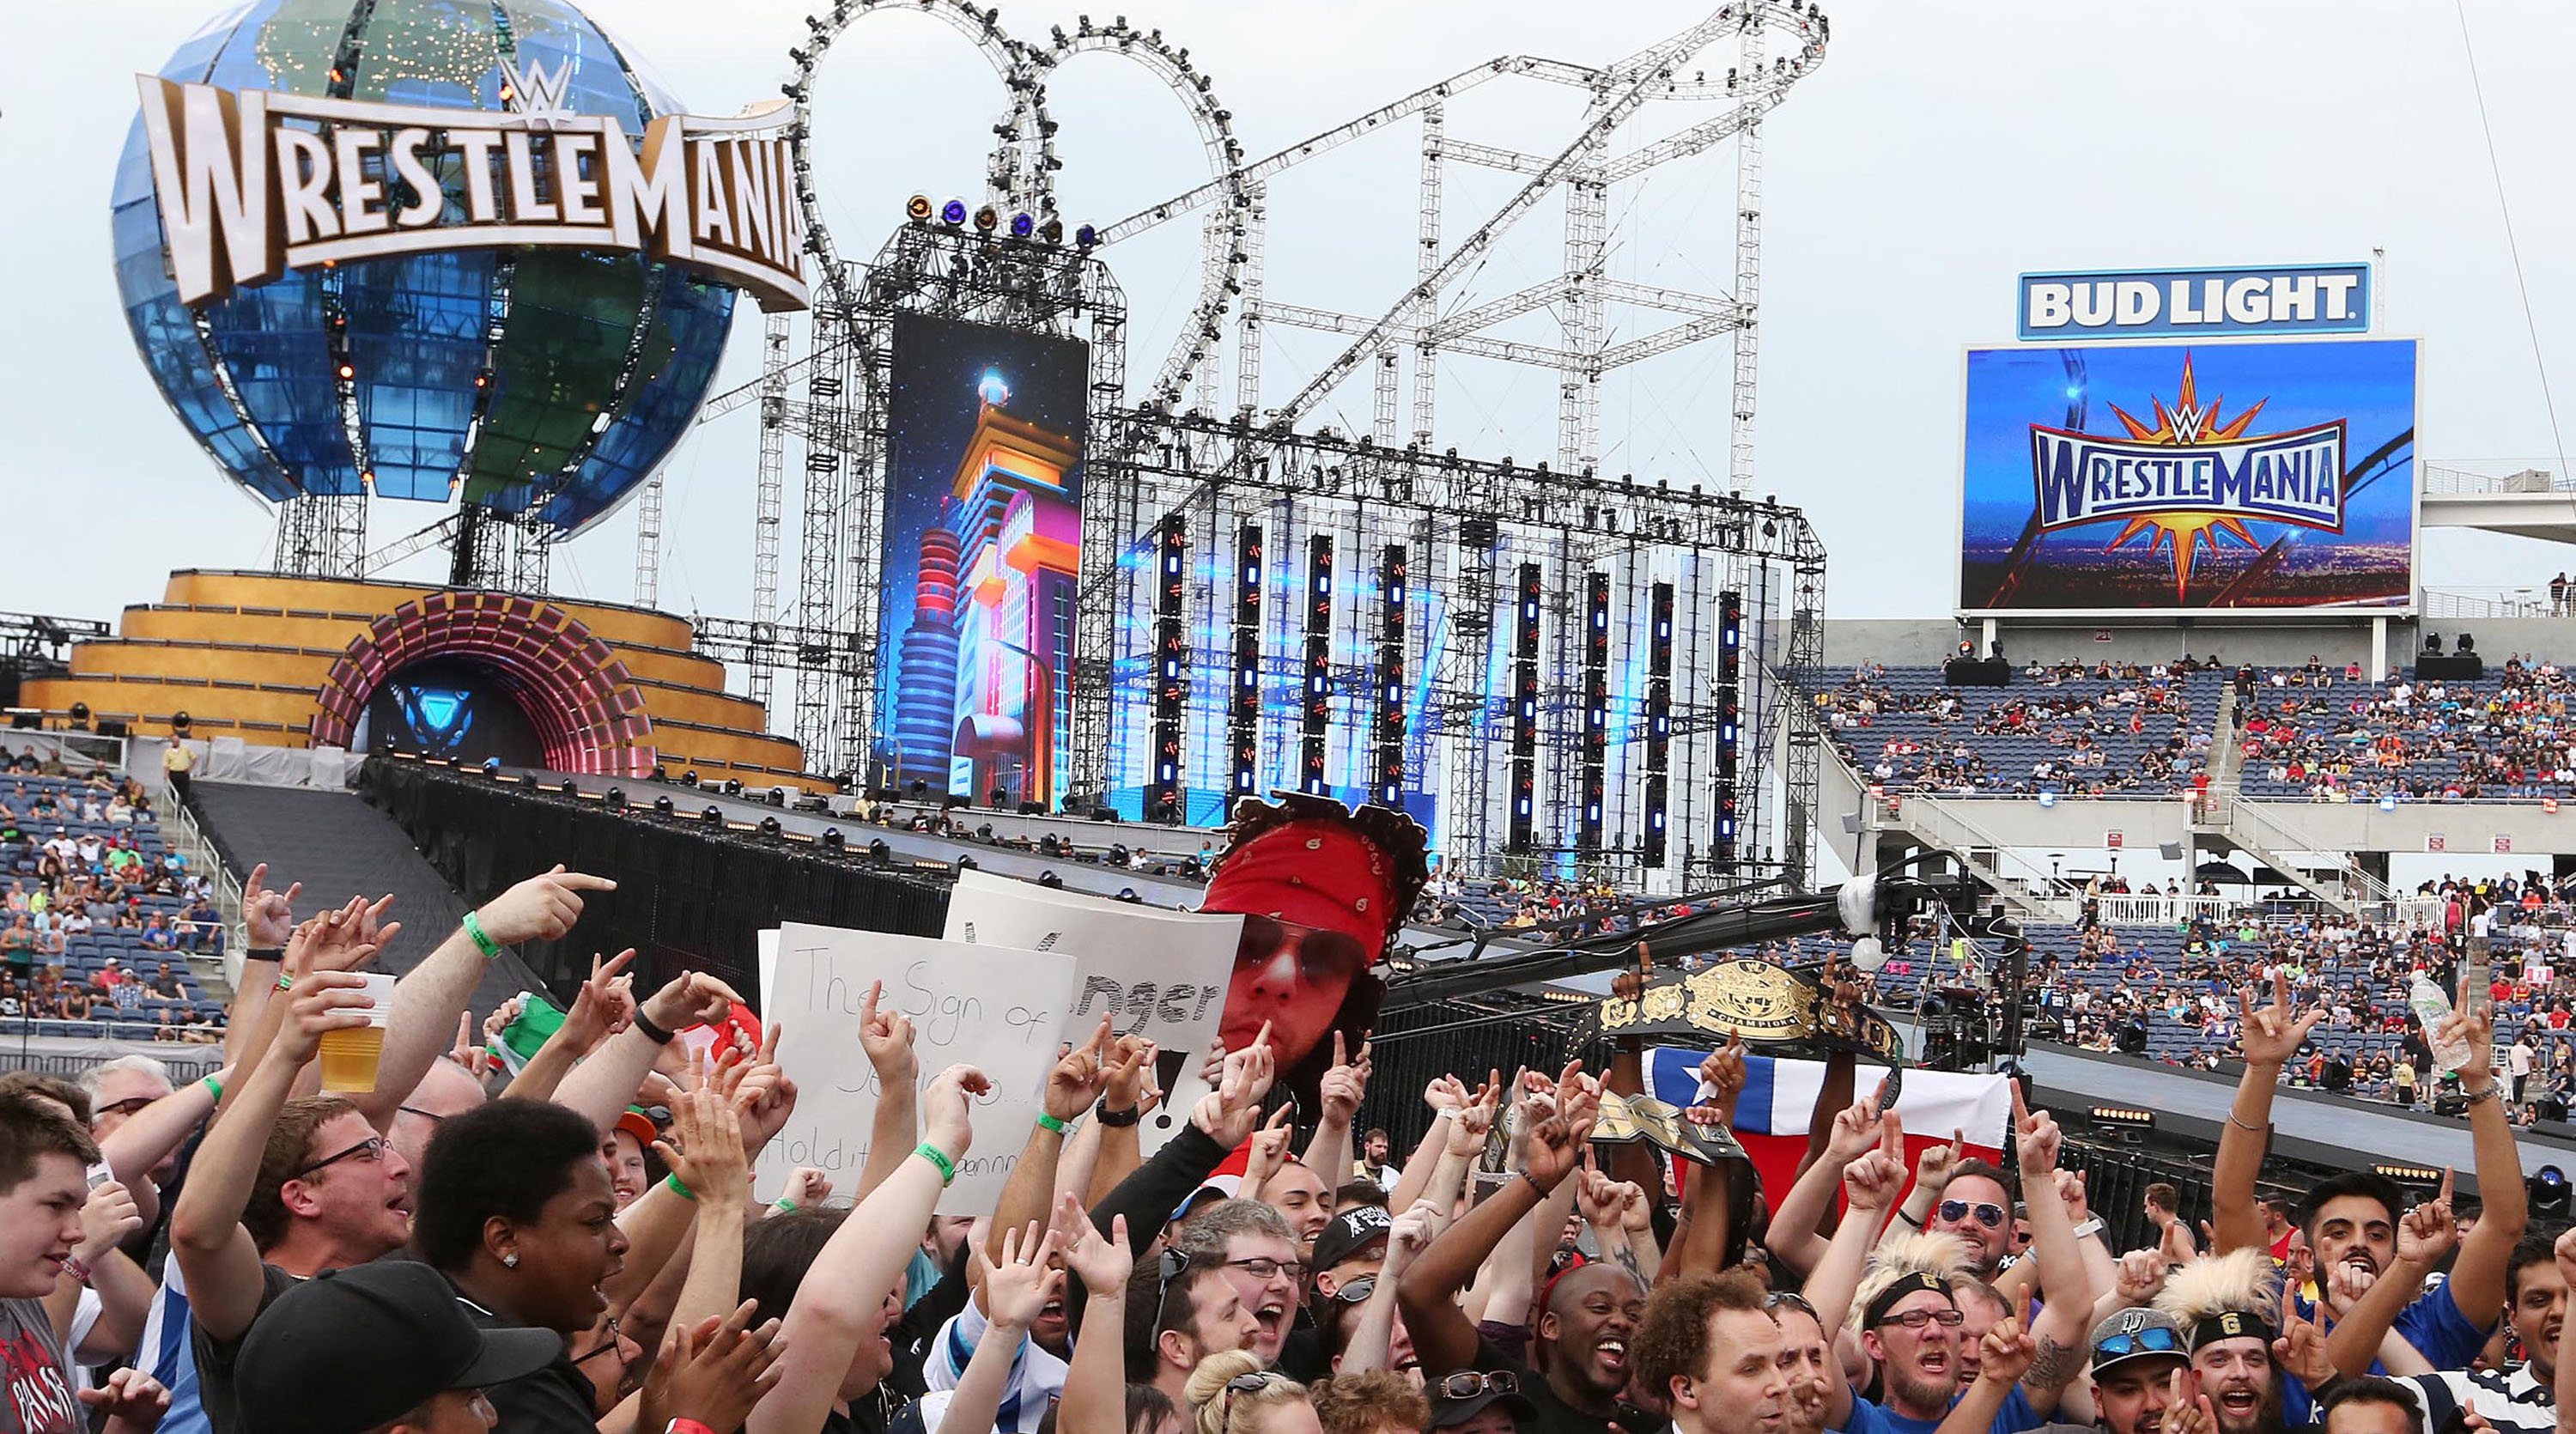 Tampa Bay to host WrestleMania 36